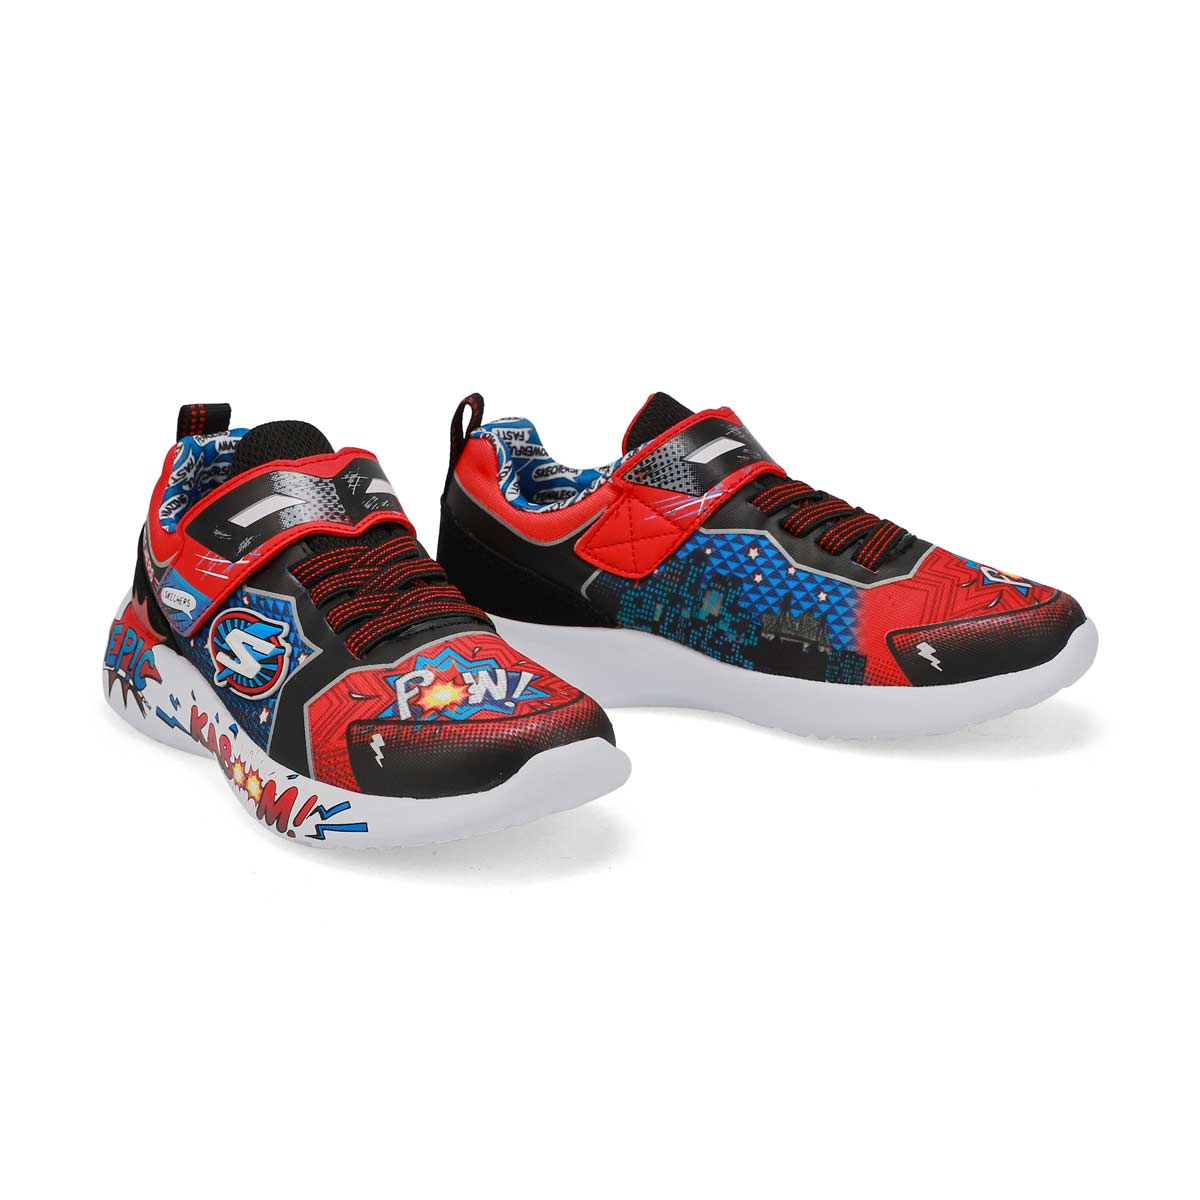 Boys' Dynamight Defender Squad Sneakers - Red/Blk